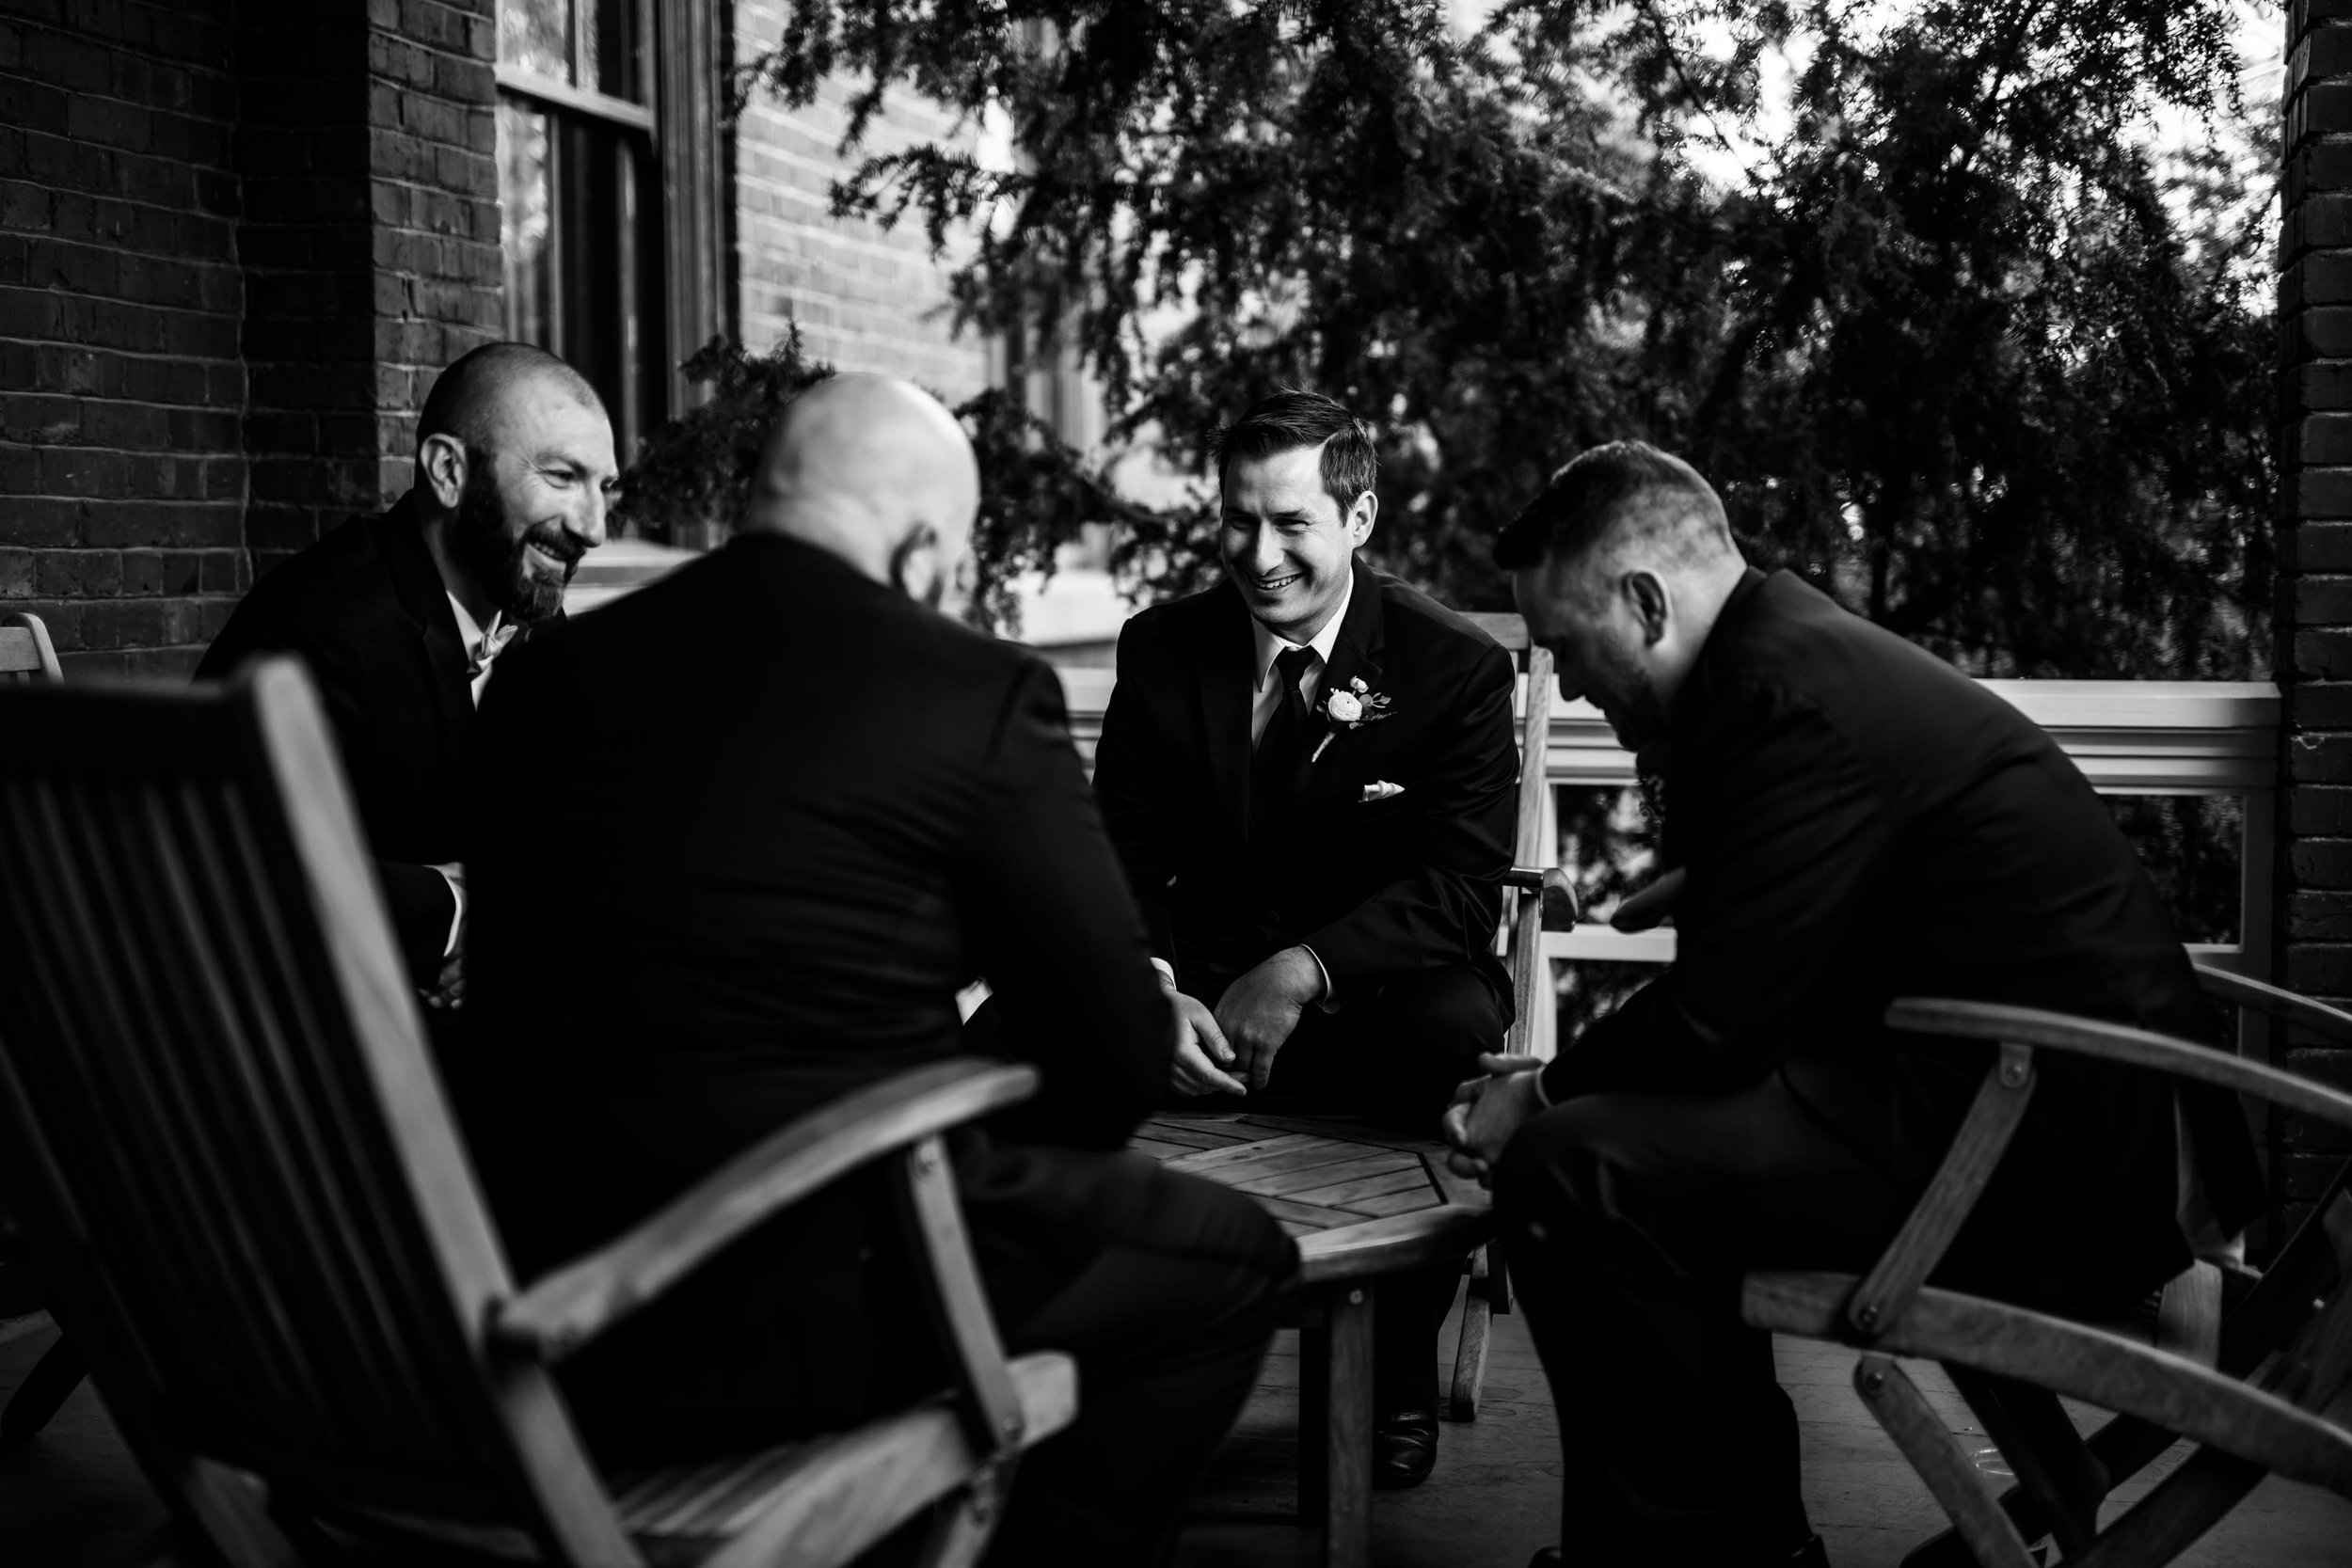 edgefield wedding photos25.jpg